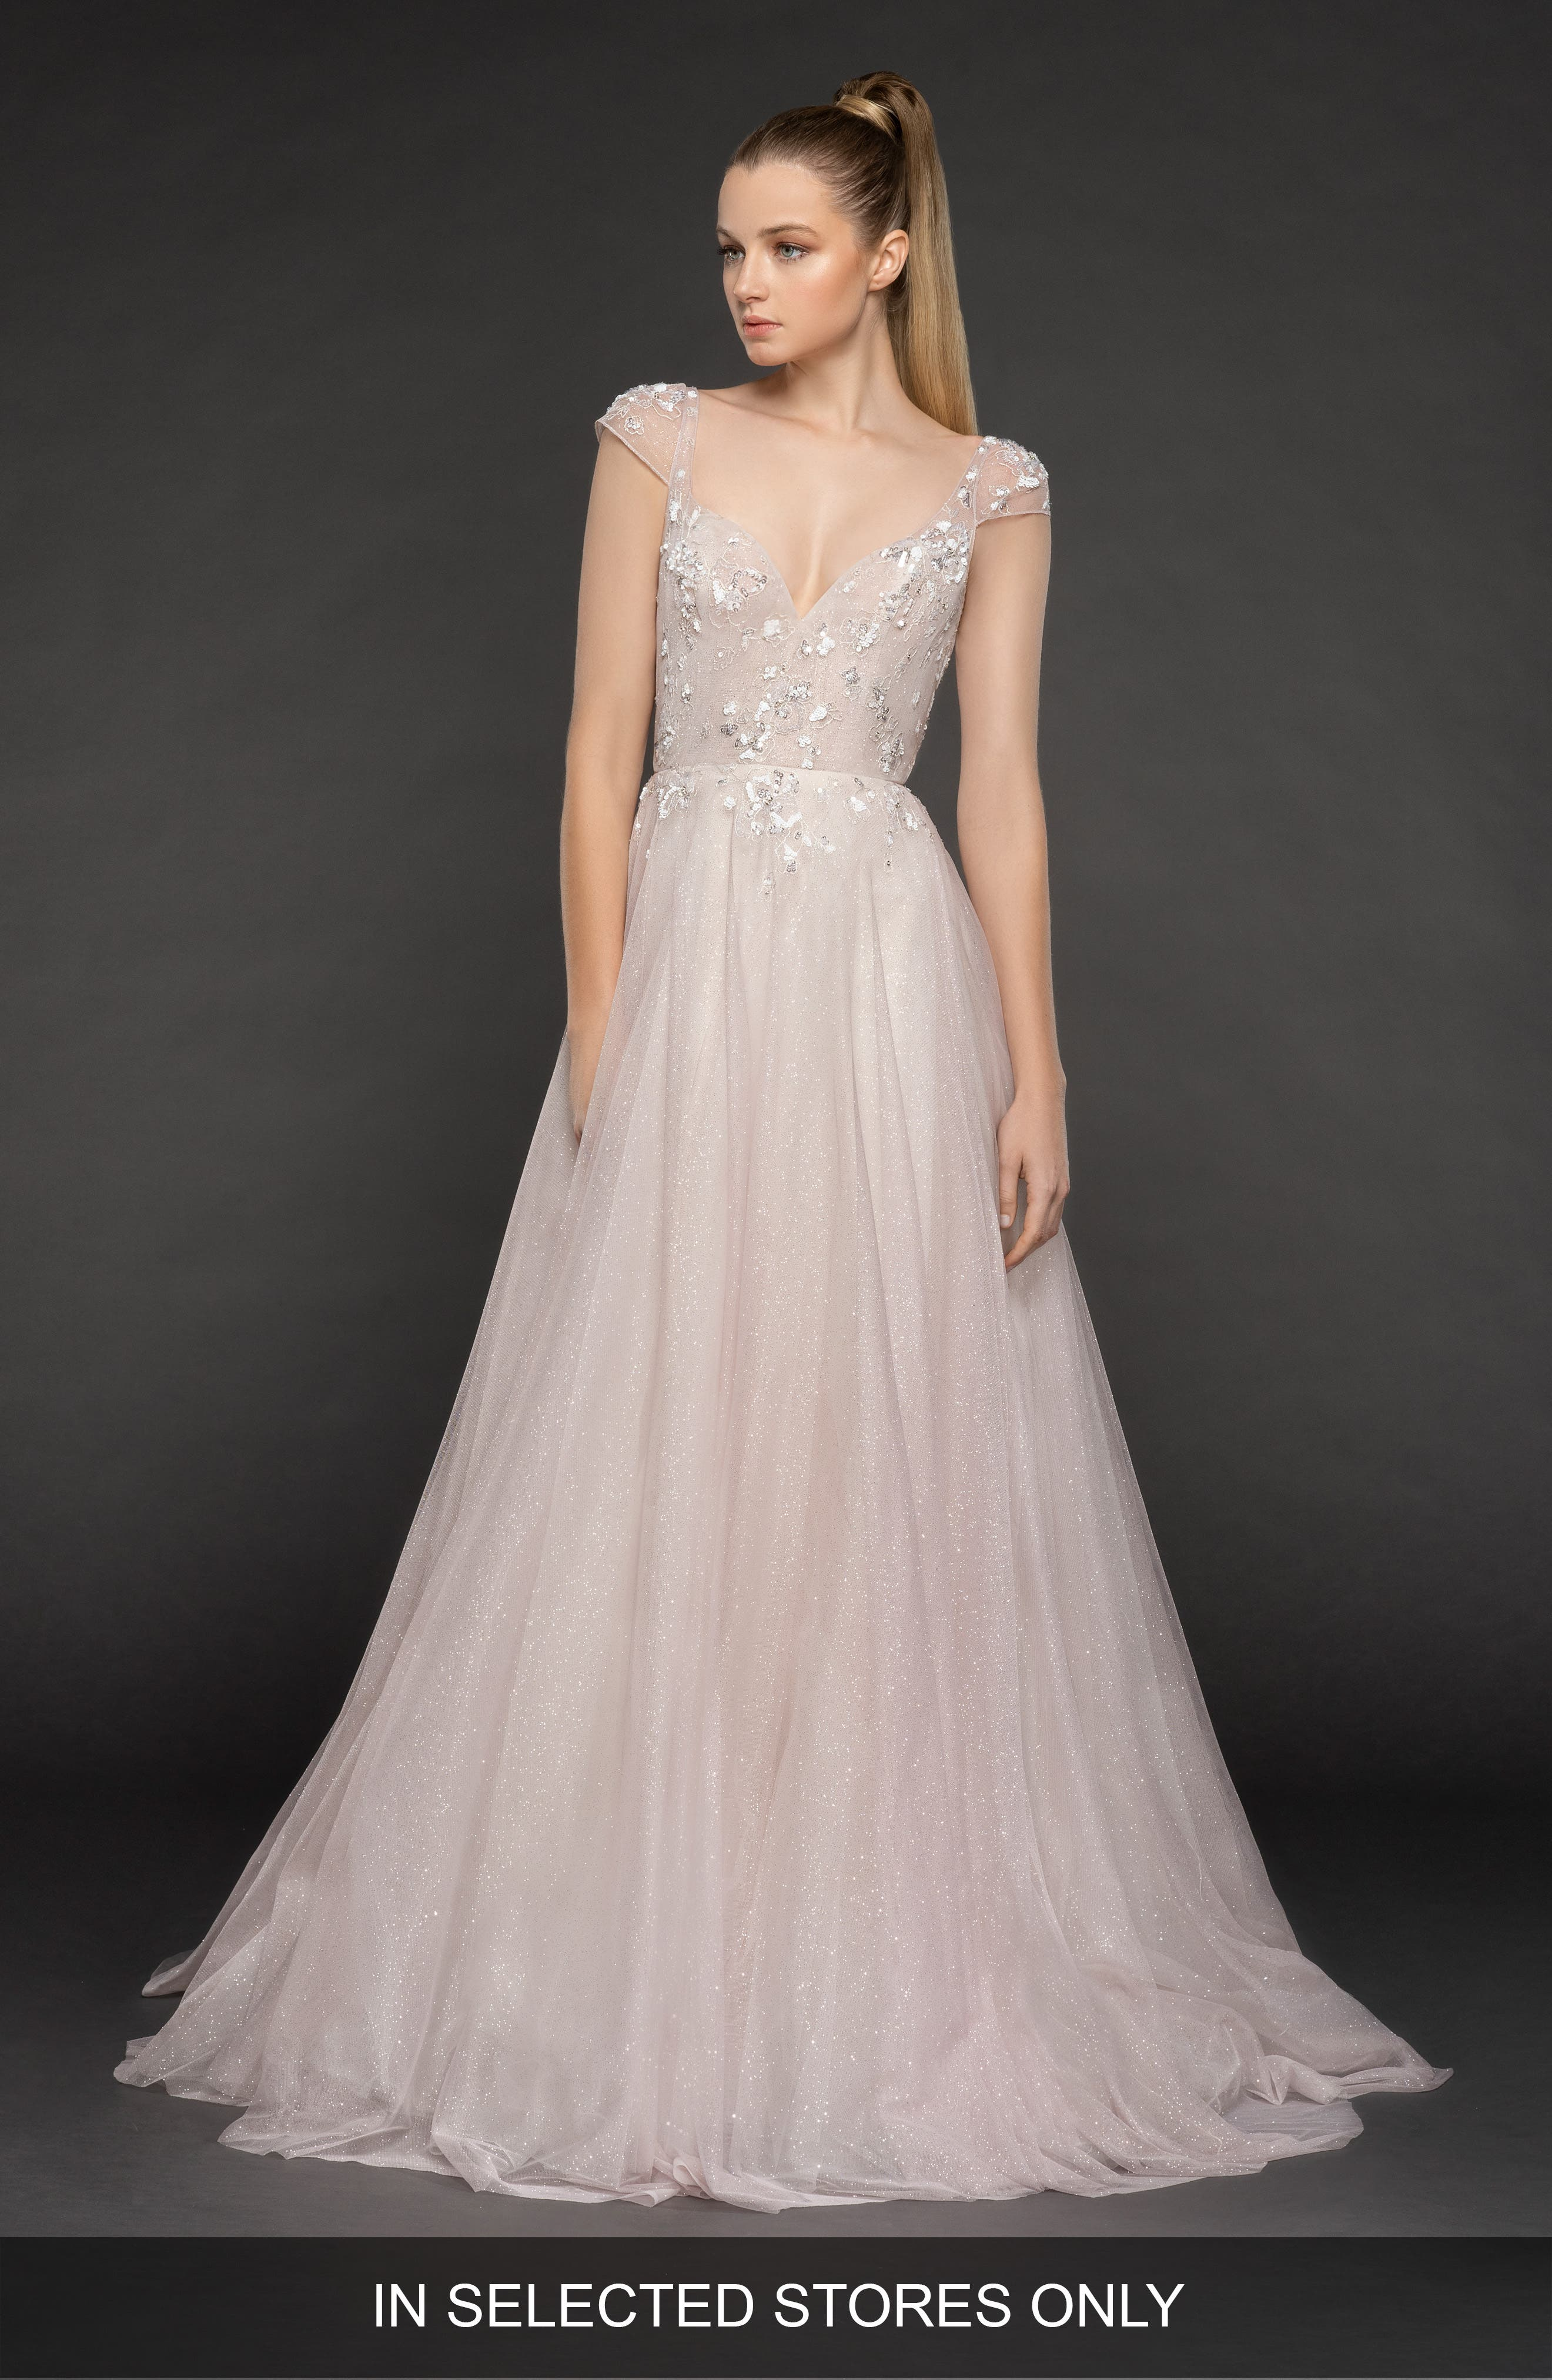 Blush By Hayley Paige Amour Tulle A-Line Gown, Size IN STORE ONLY - Pink